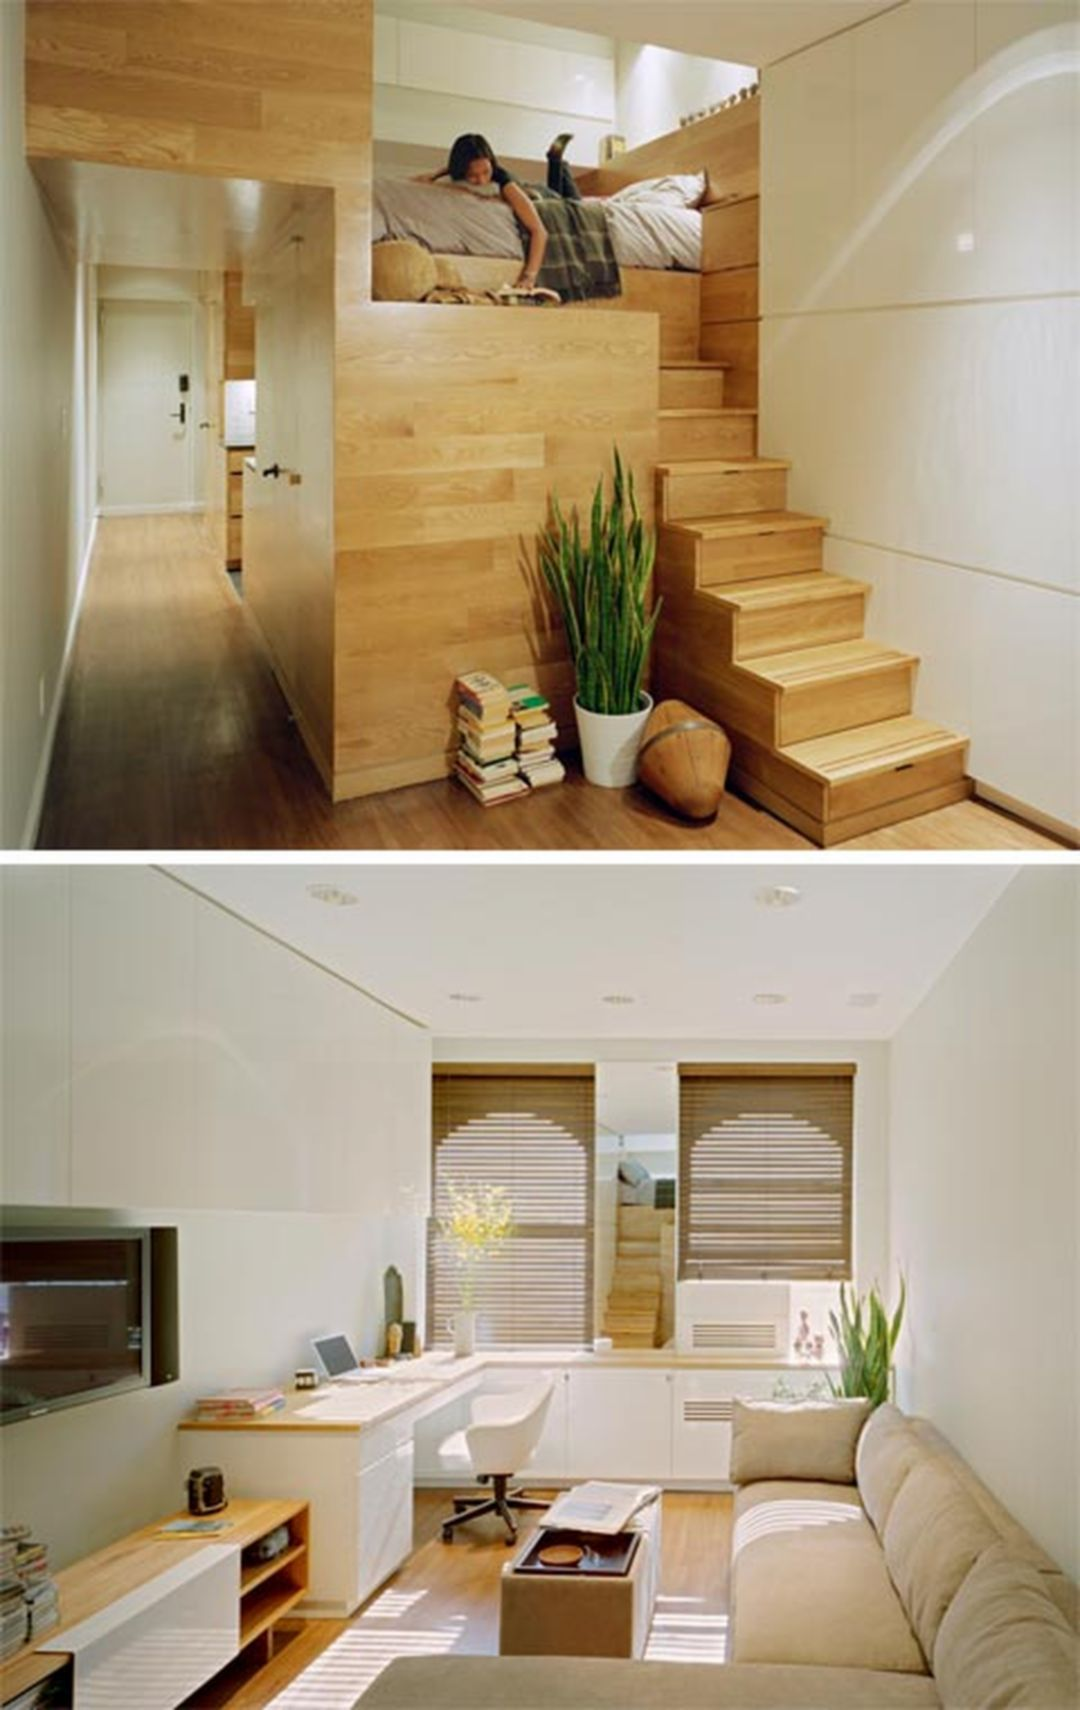 25 Incredible Small Home Interiors Design Ideas That You Never Seen Before Tiny House Interior Design Small House Interior Design Small House Interior